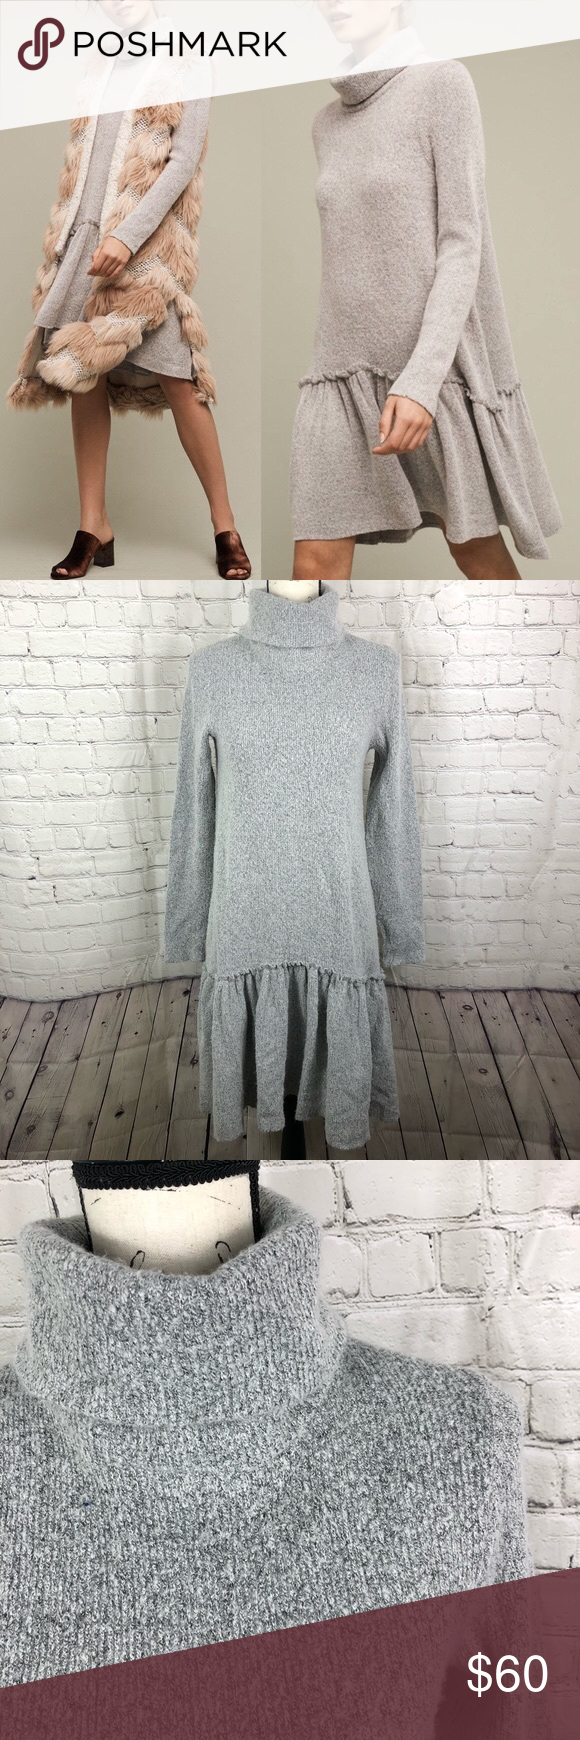 c95cdf789d24 Anthropologie Moth Eira Sweater Dress Excellent condition. Acrylic, wool  Turtleneck swing silhouette Dropwaist hem detail Pullover styling Hand wash  ...